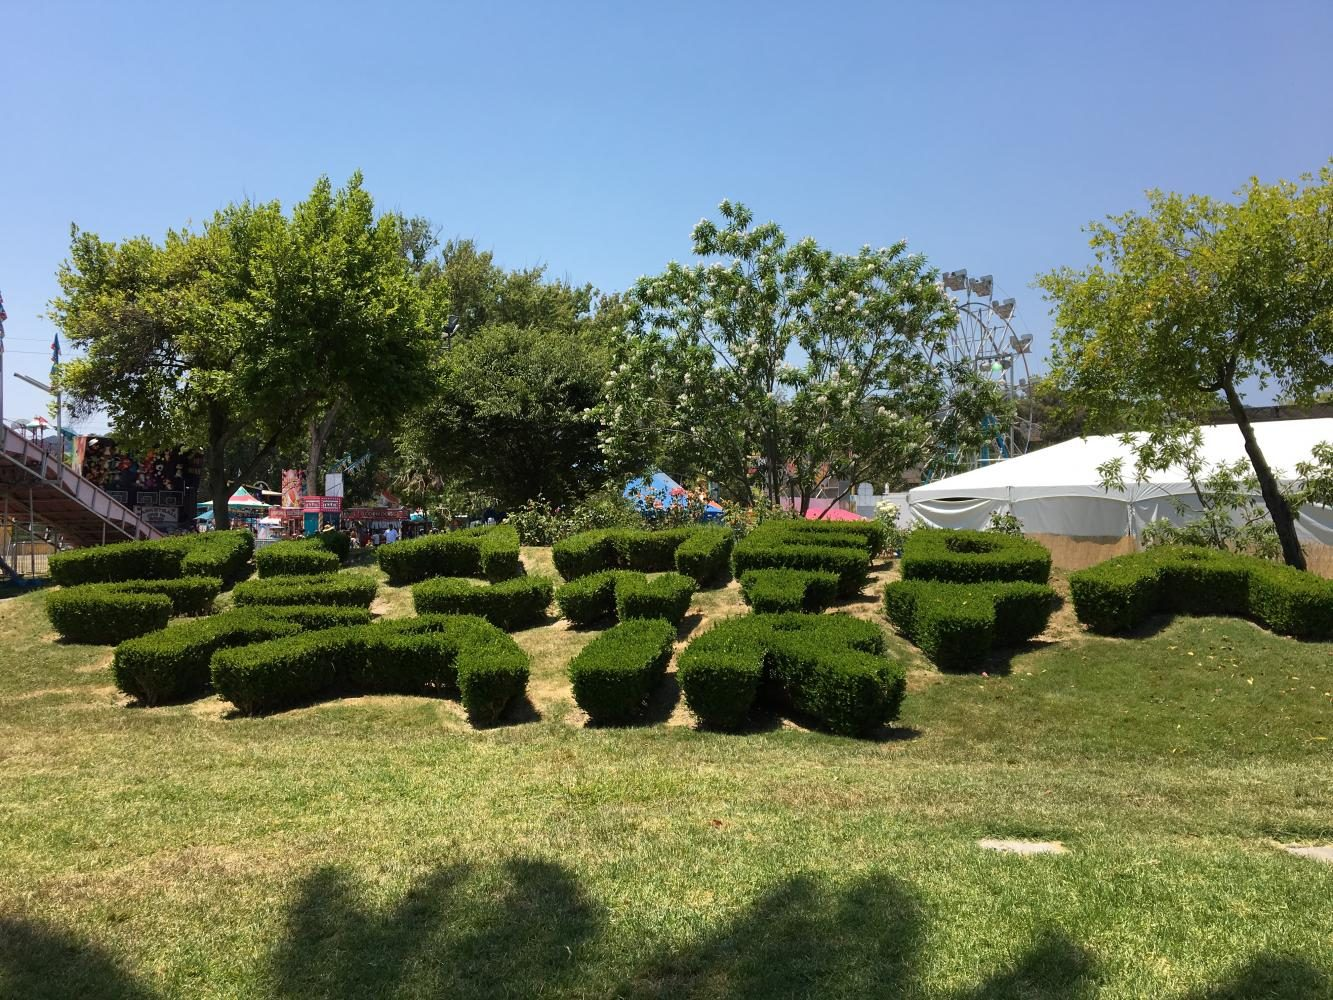 Hedge+cutouts+at+the+family-friendly%2C+fun+event+read+%22Alameda+County+Fair%22.+